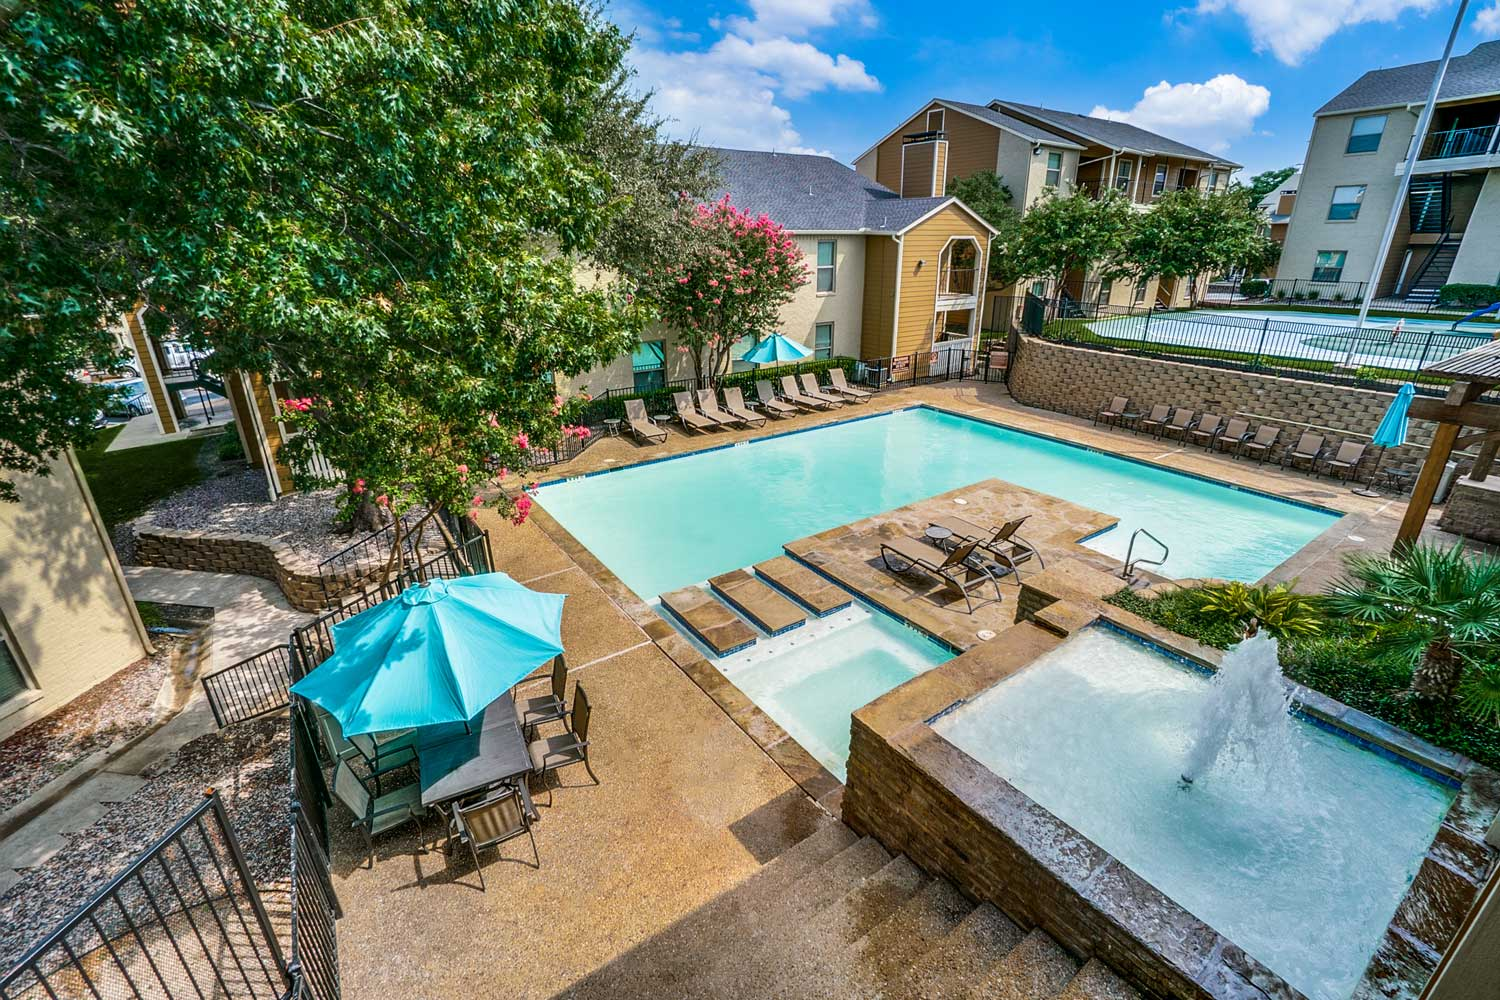 Jacuzzi at Riviera Apartments in Dallas, Texas